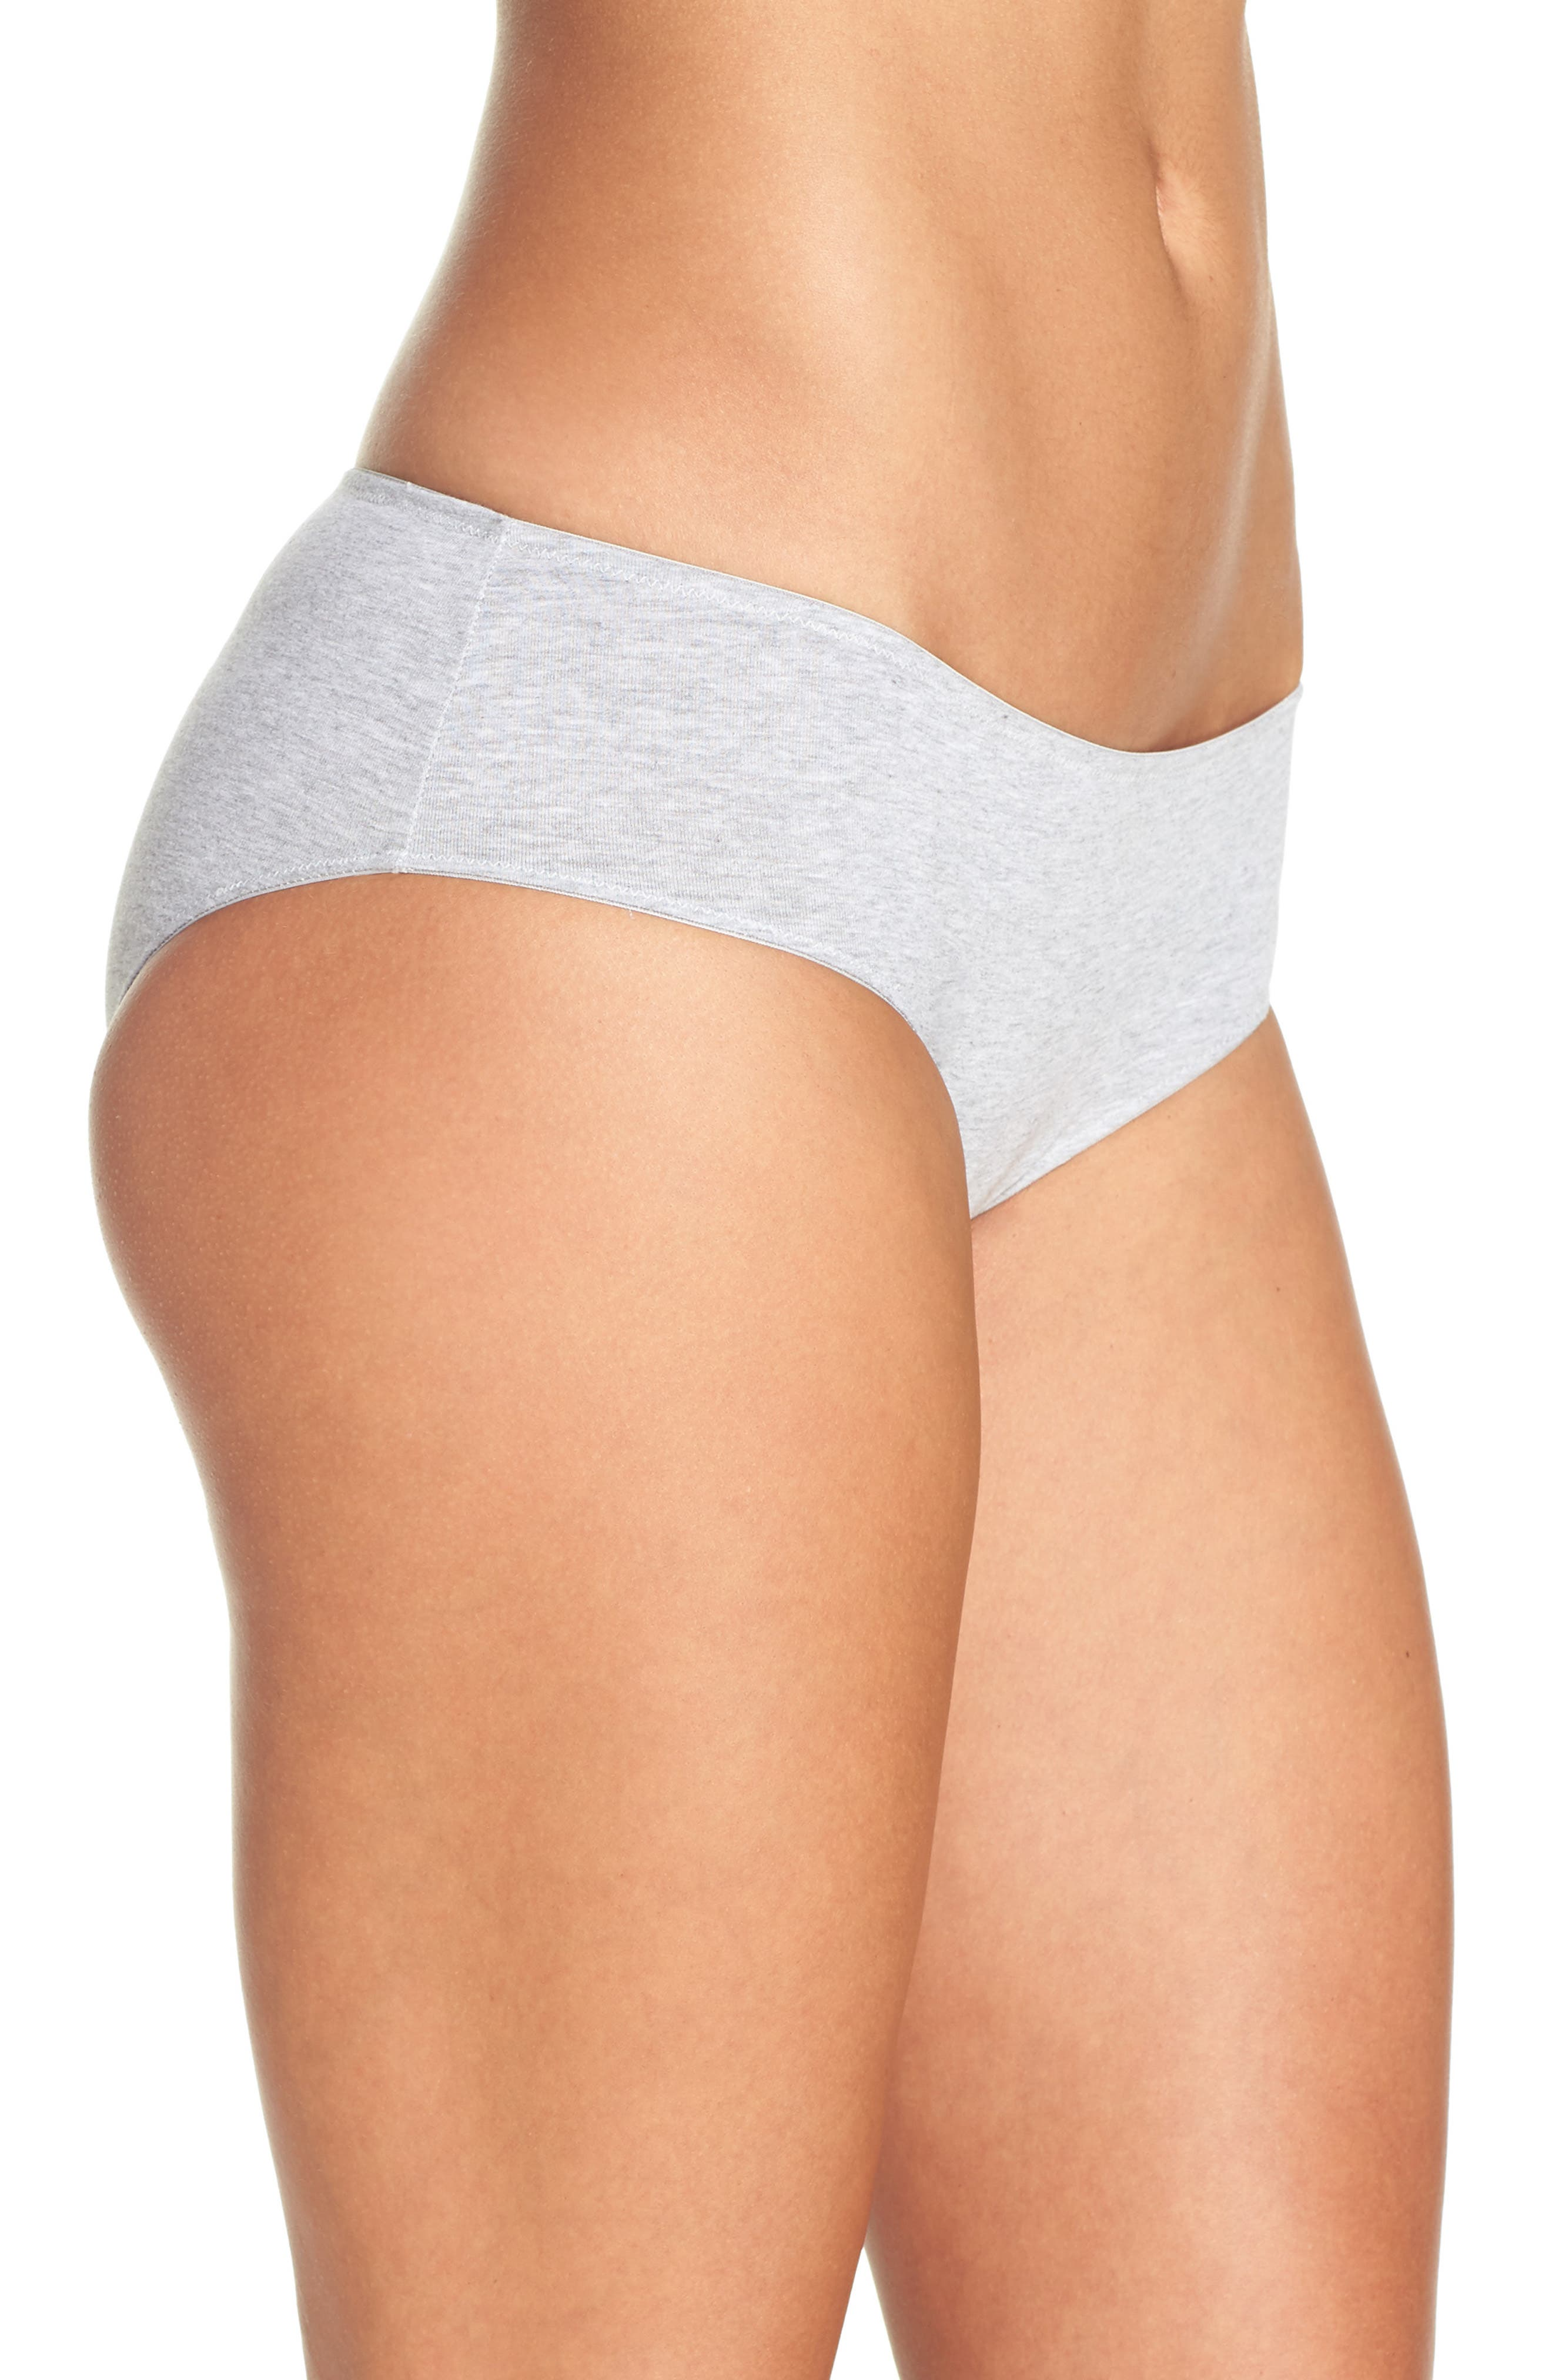 Hipster Undies,                             Alternate thumbnail 3, color,                             Heathered Pelican